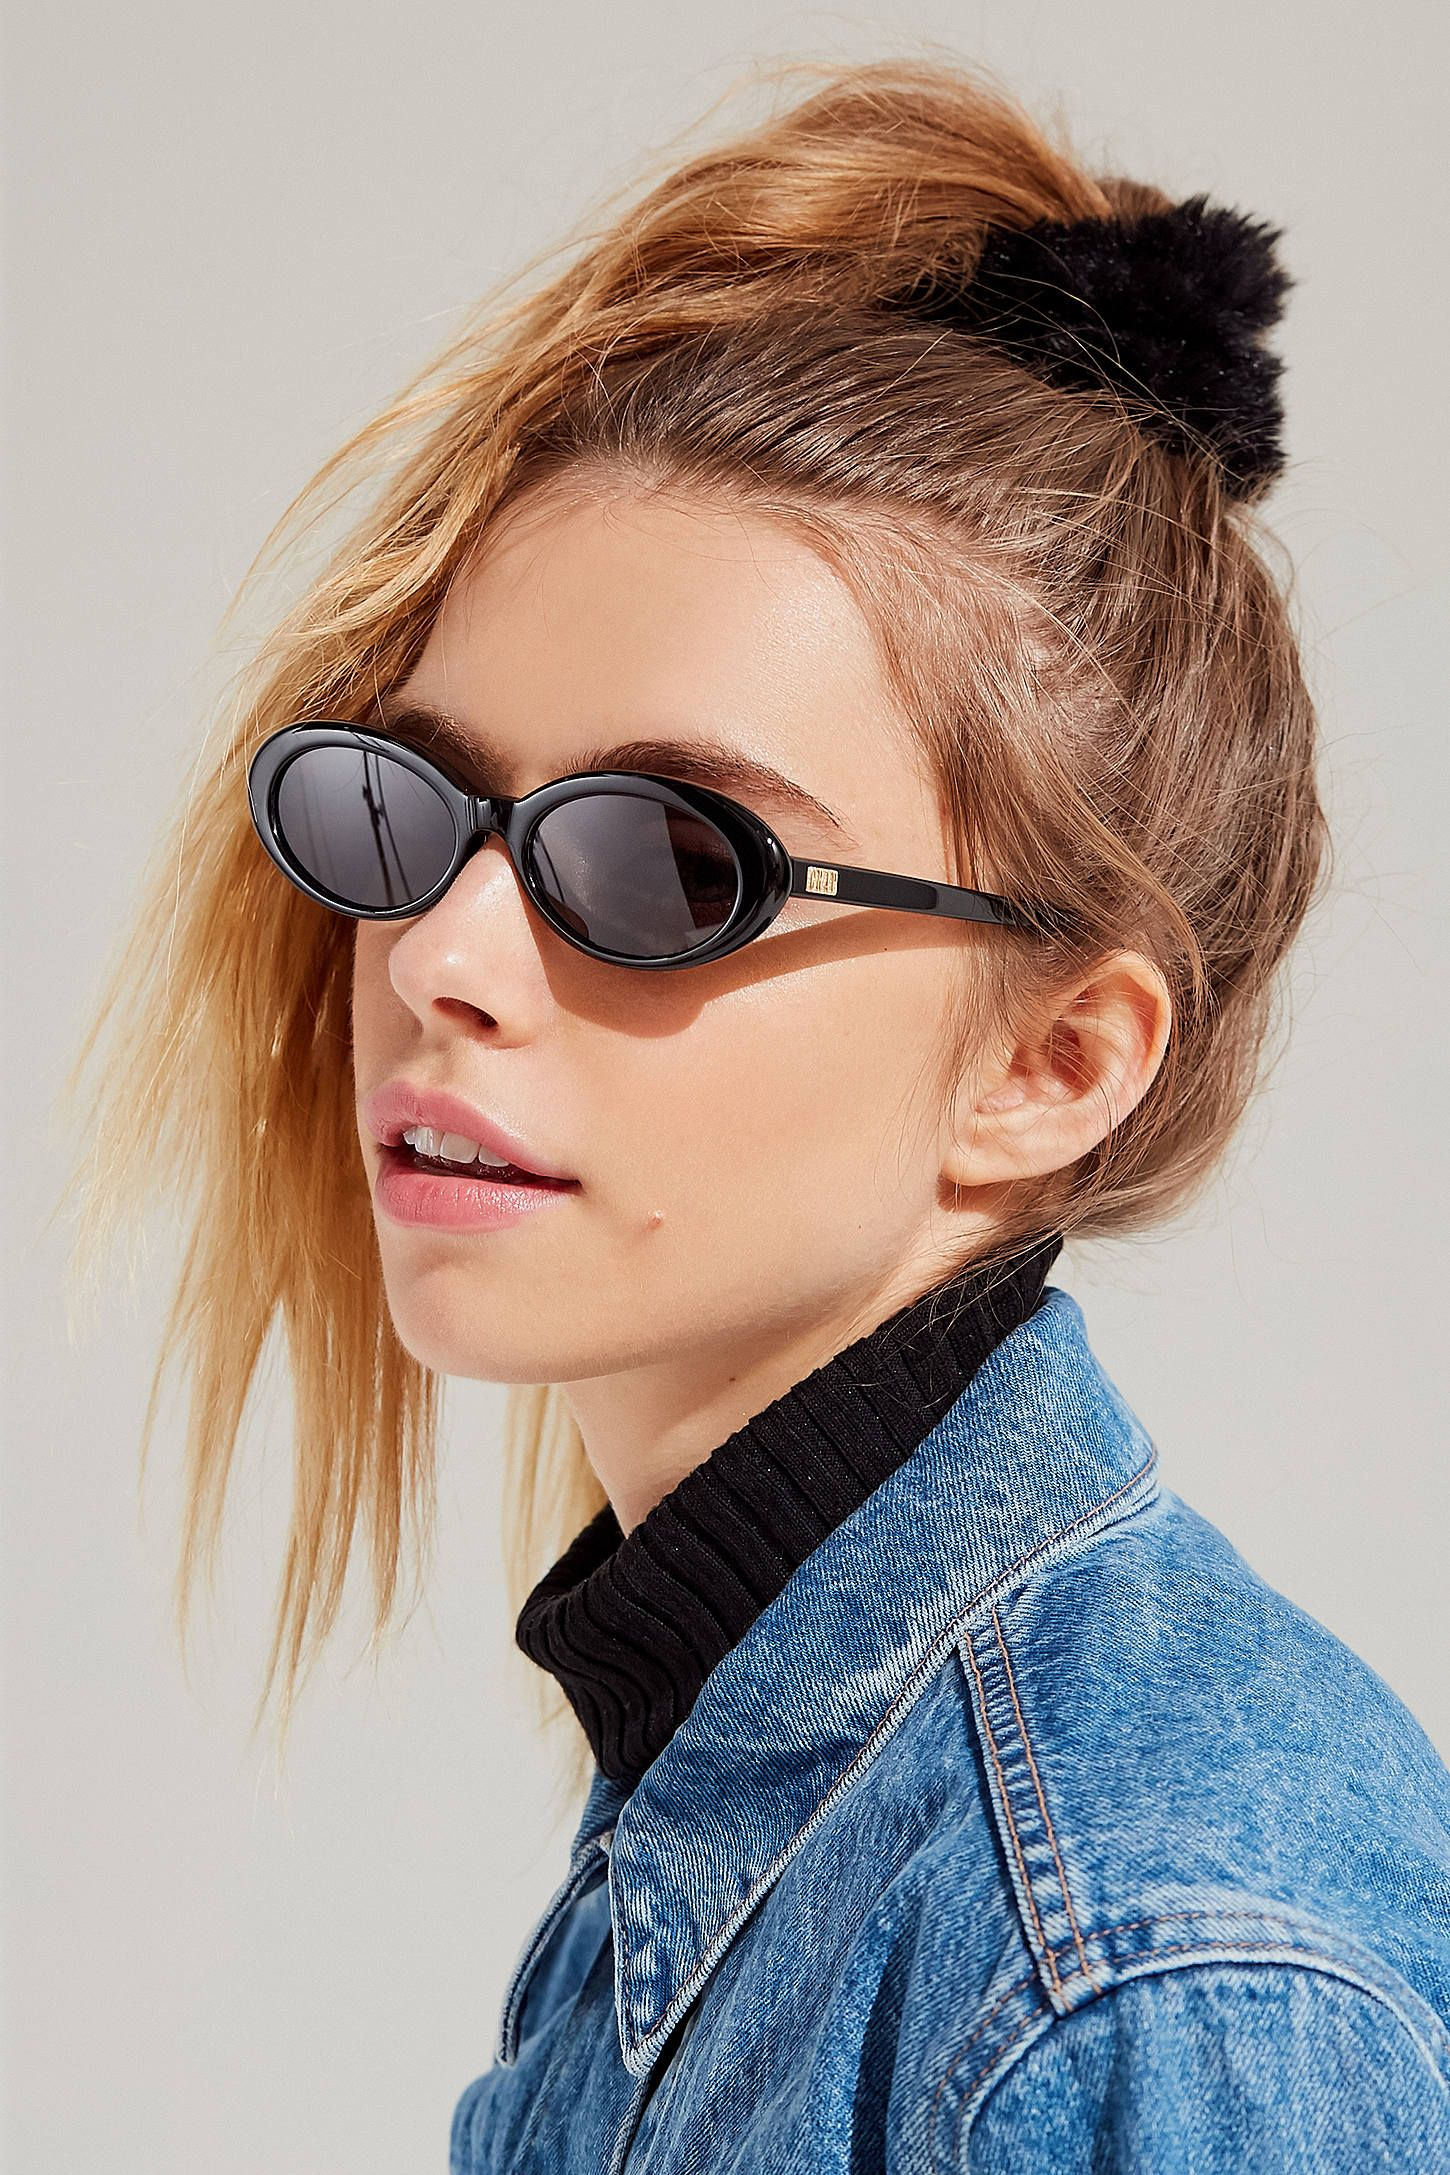 c059ecdcd7 Shop Crap Eyewear The Sweet Leaf Sunglasses at Urban Outfitters today. We  carry all the latest styles